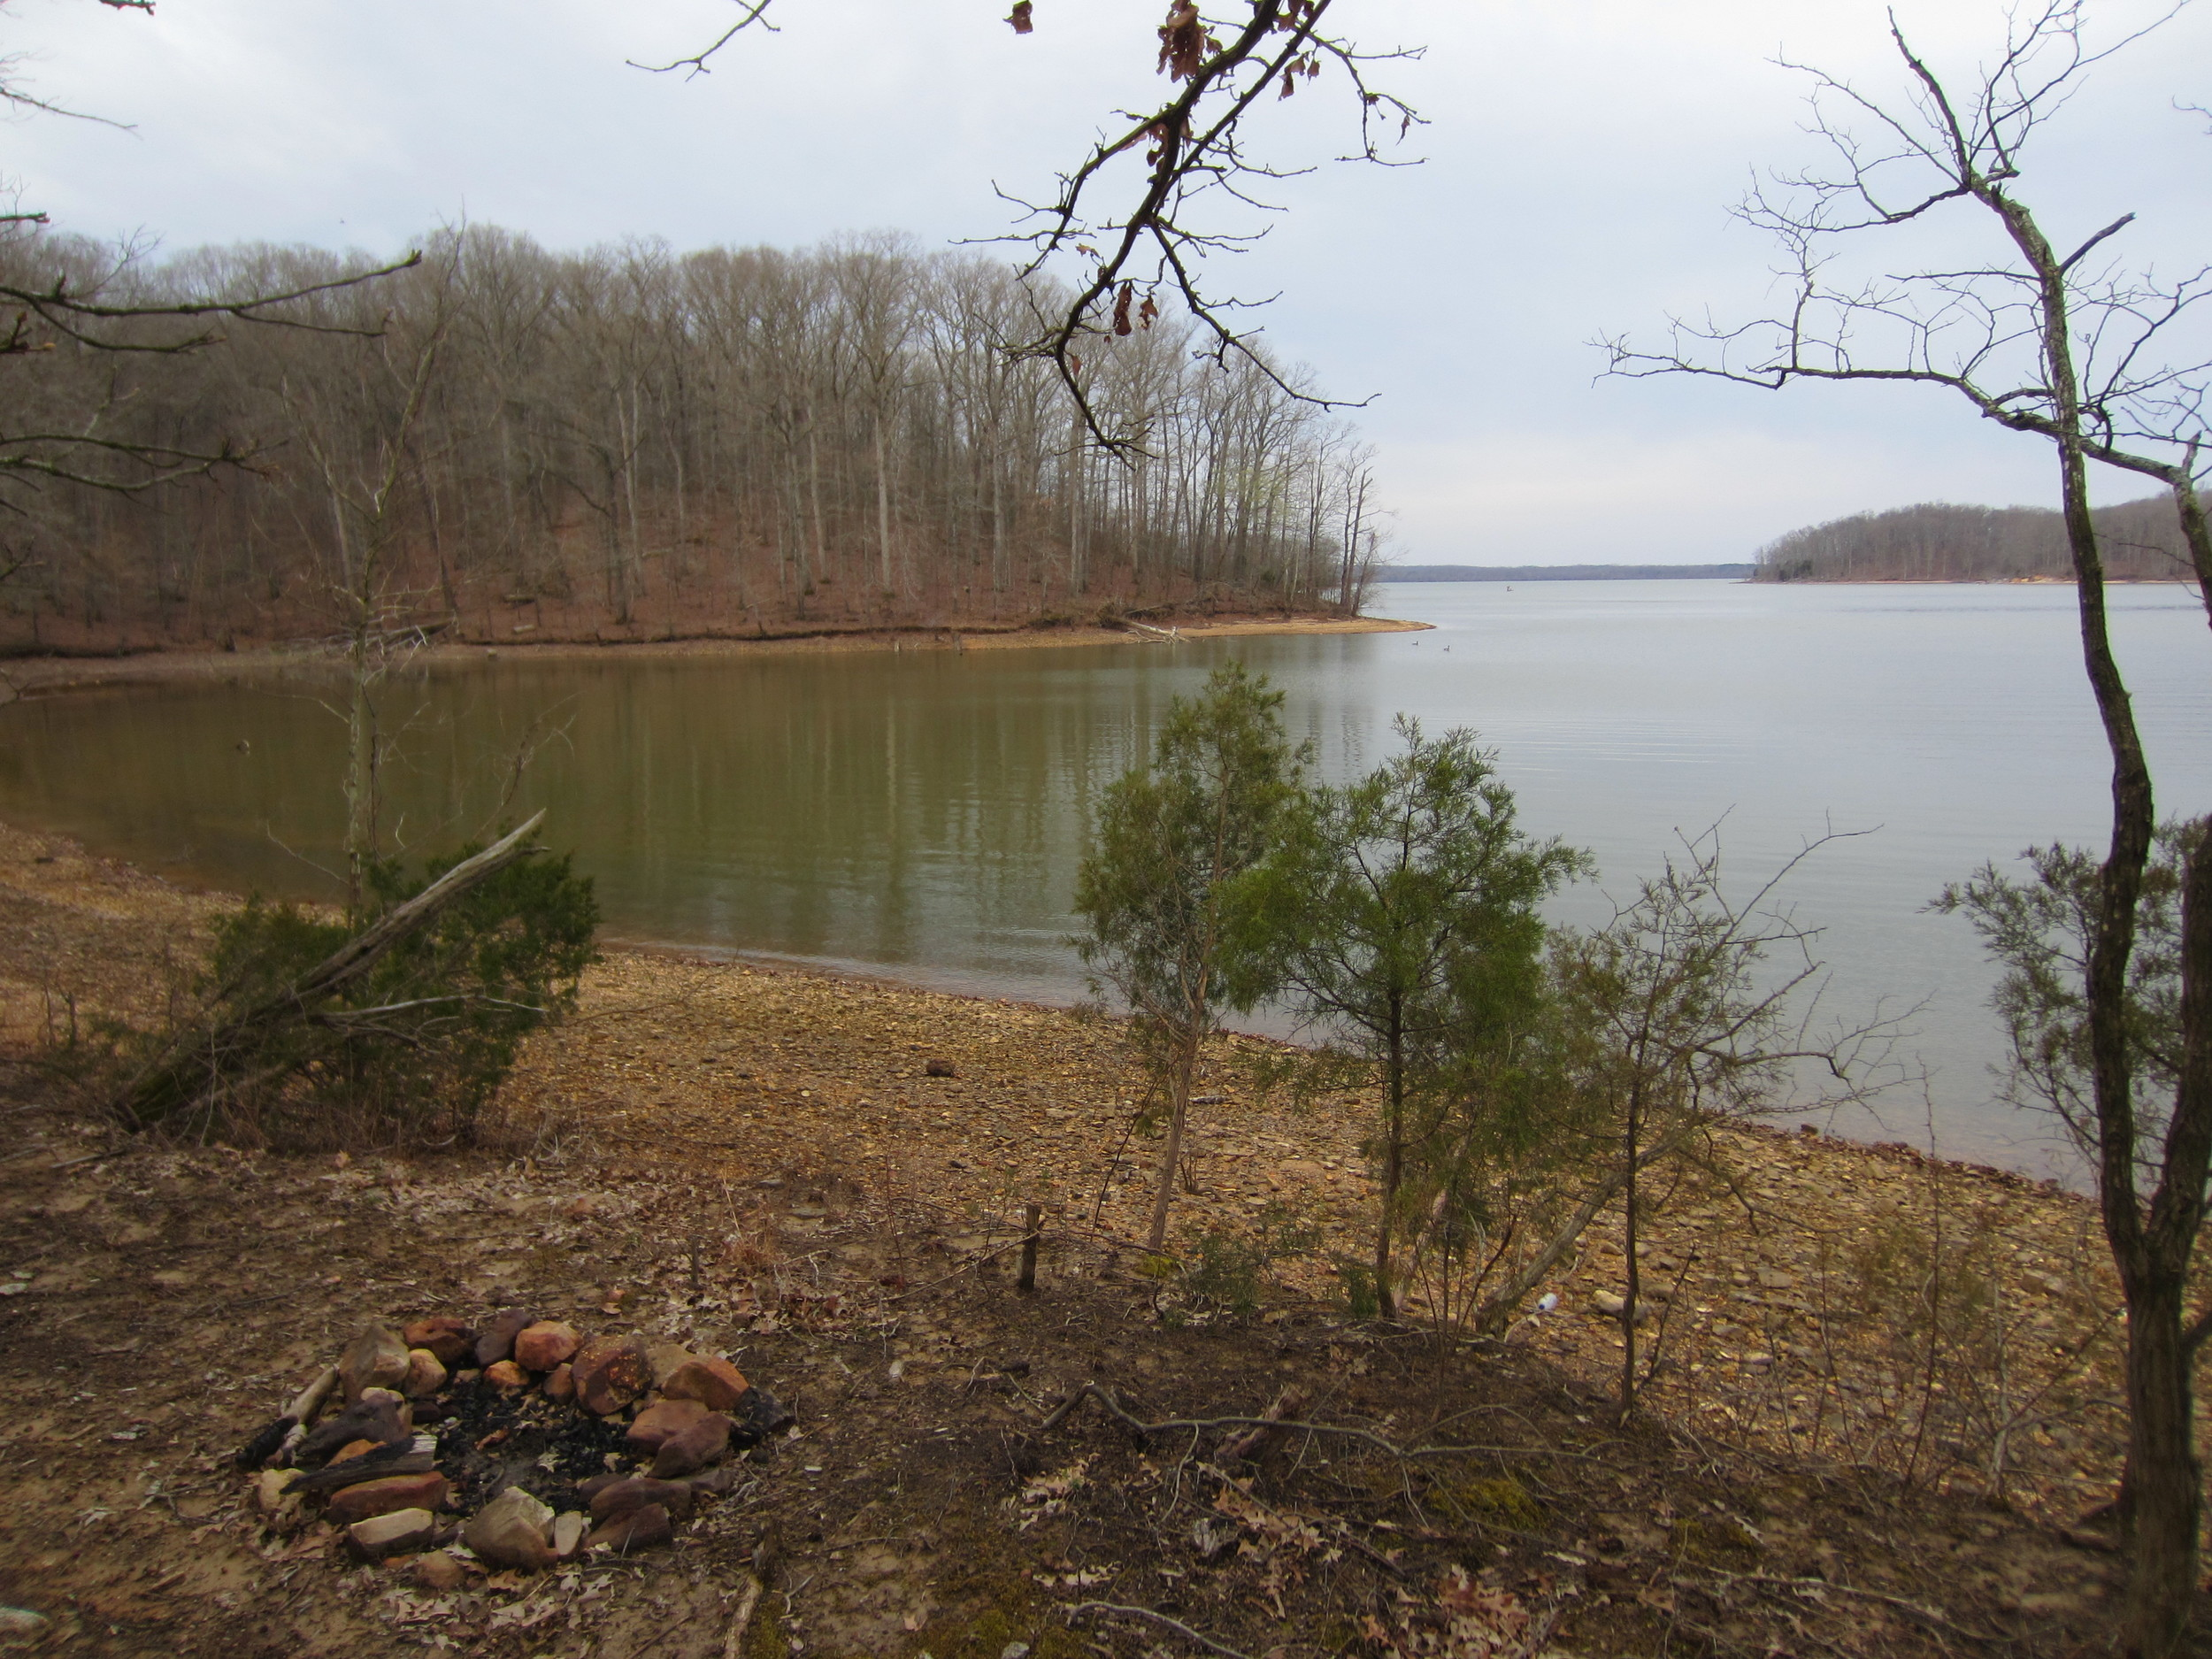 North/South Trail - Land Between the Lakes, KY